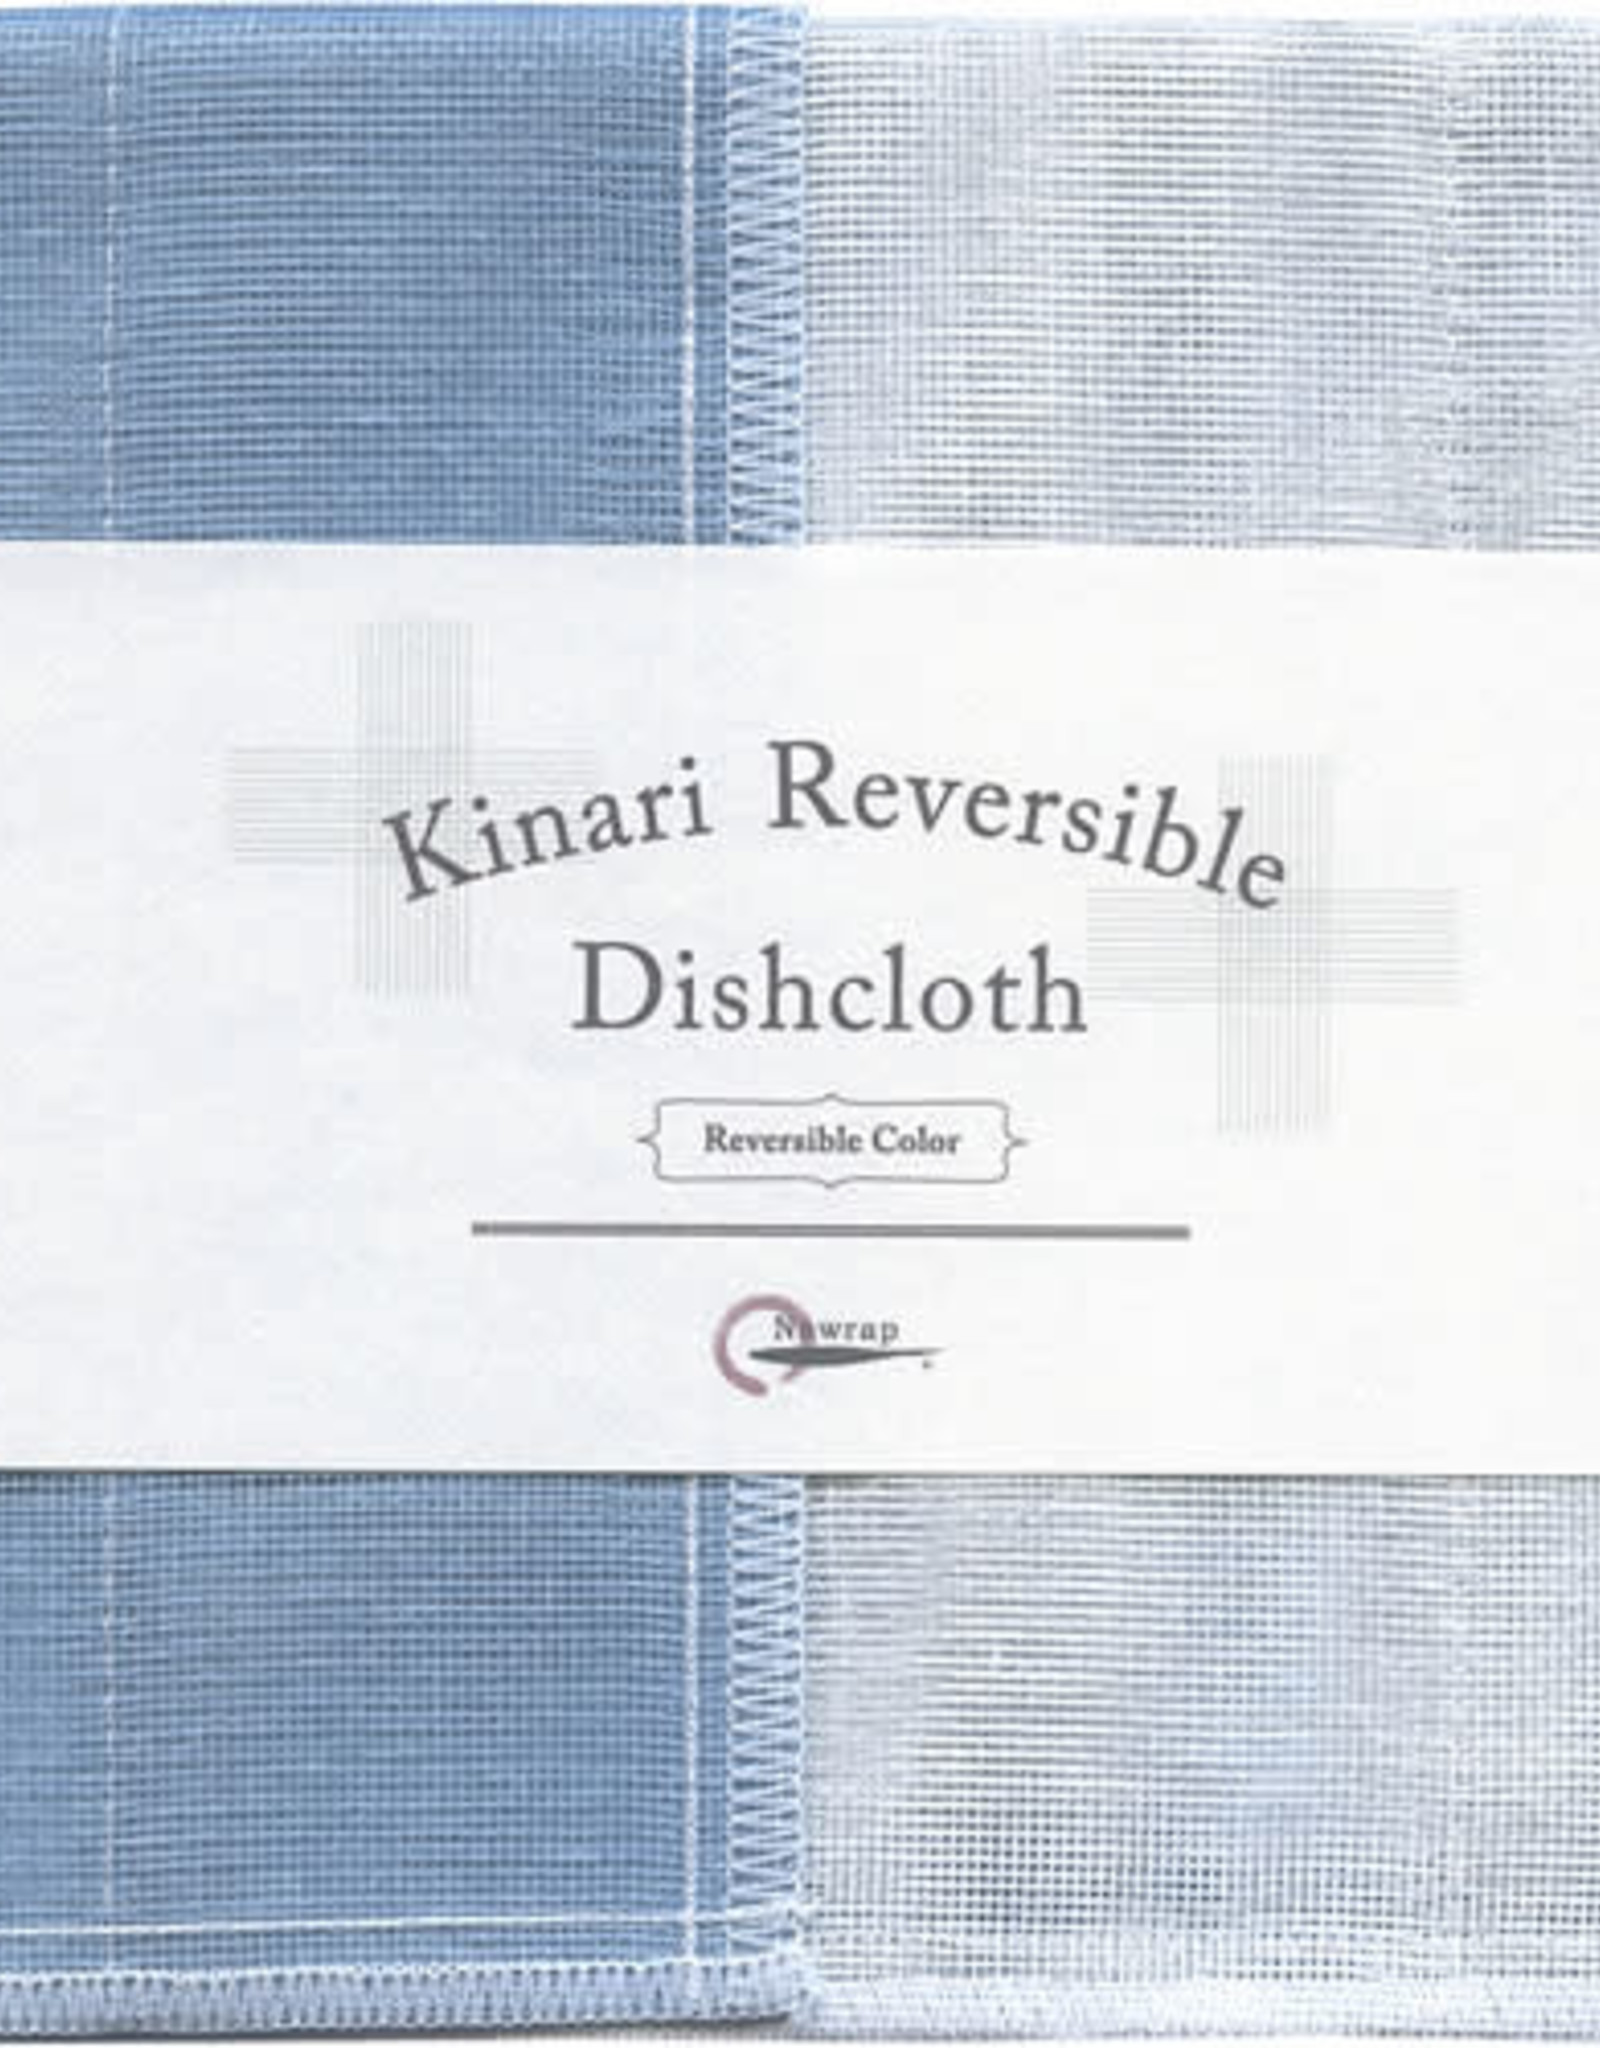 Ippinka Kinari Reversible Dishcloth